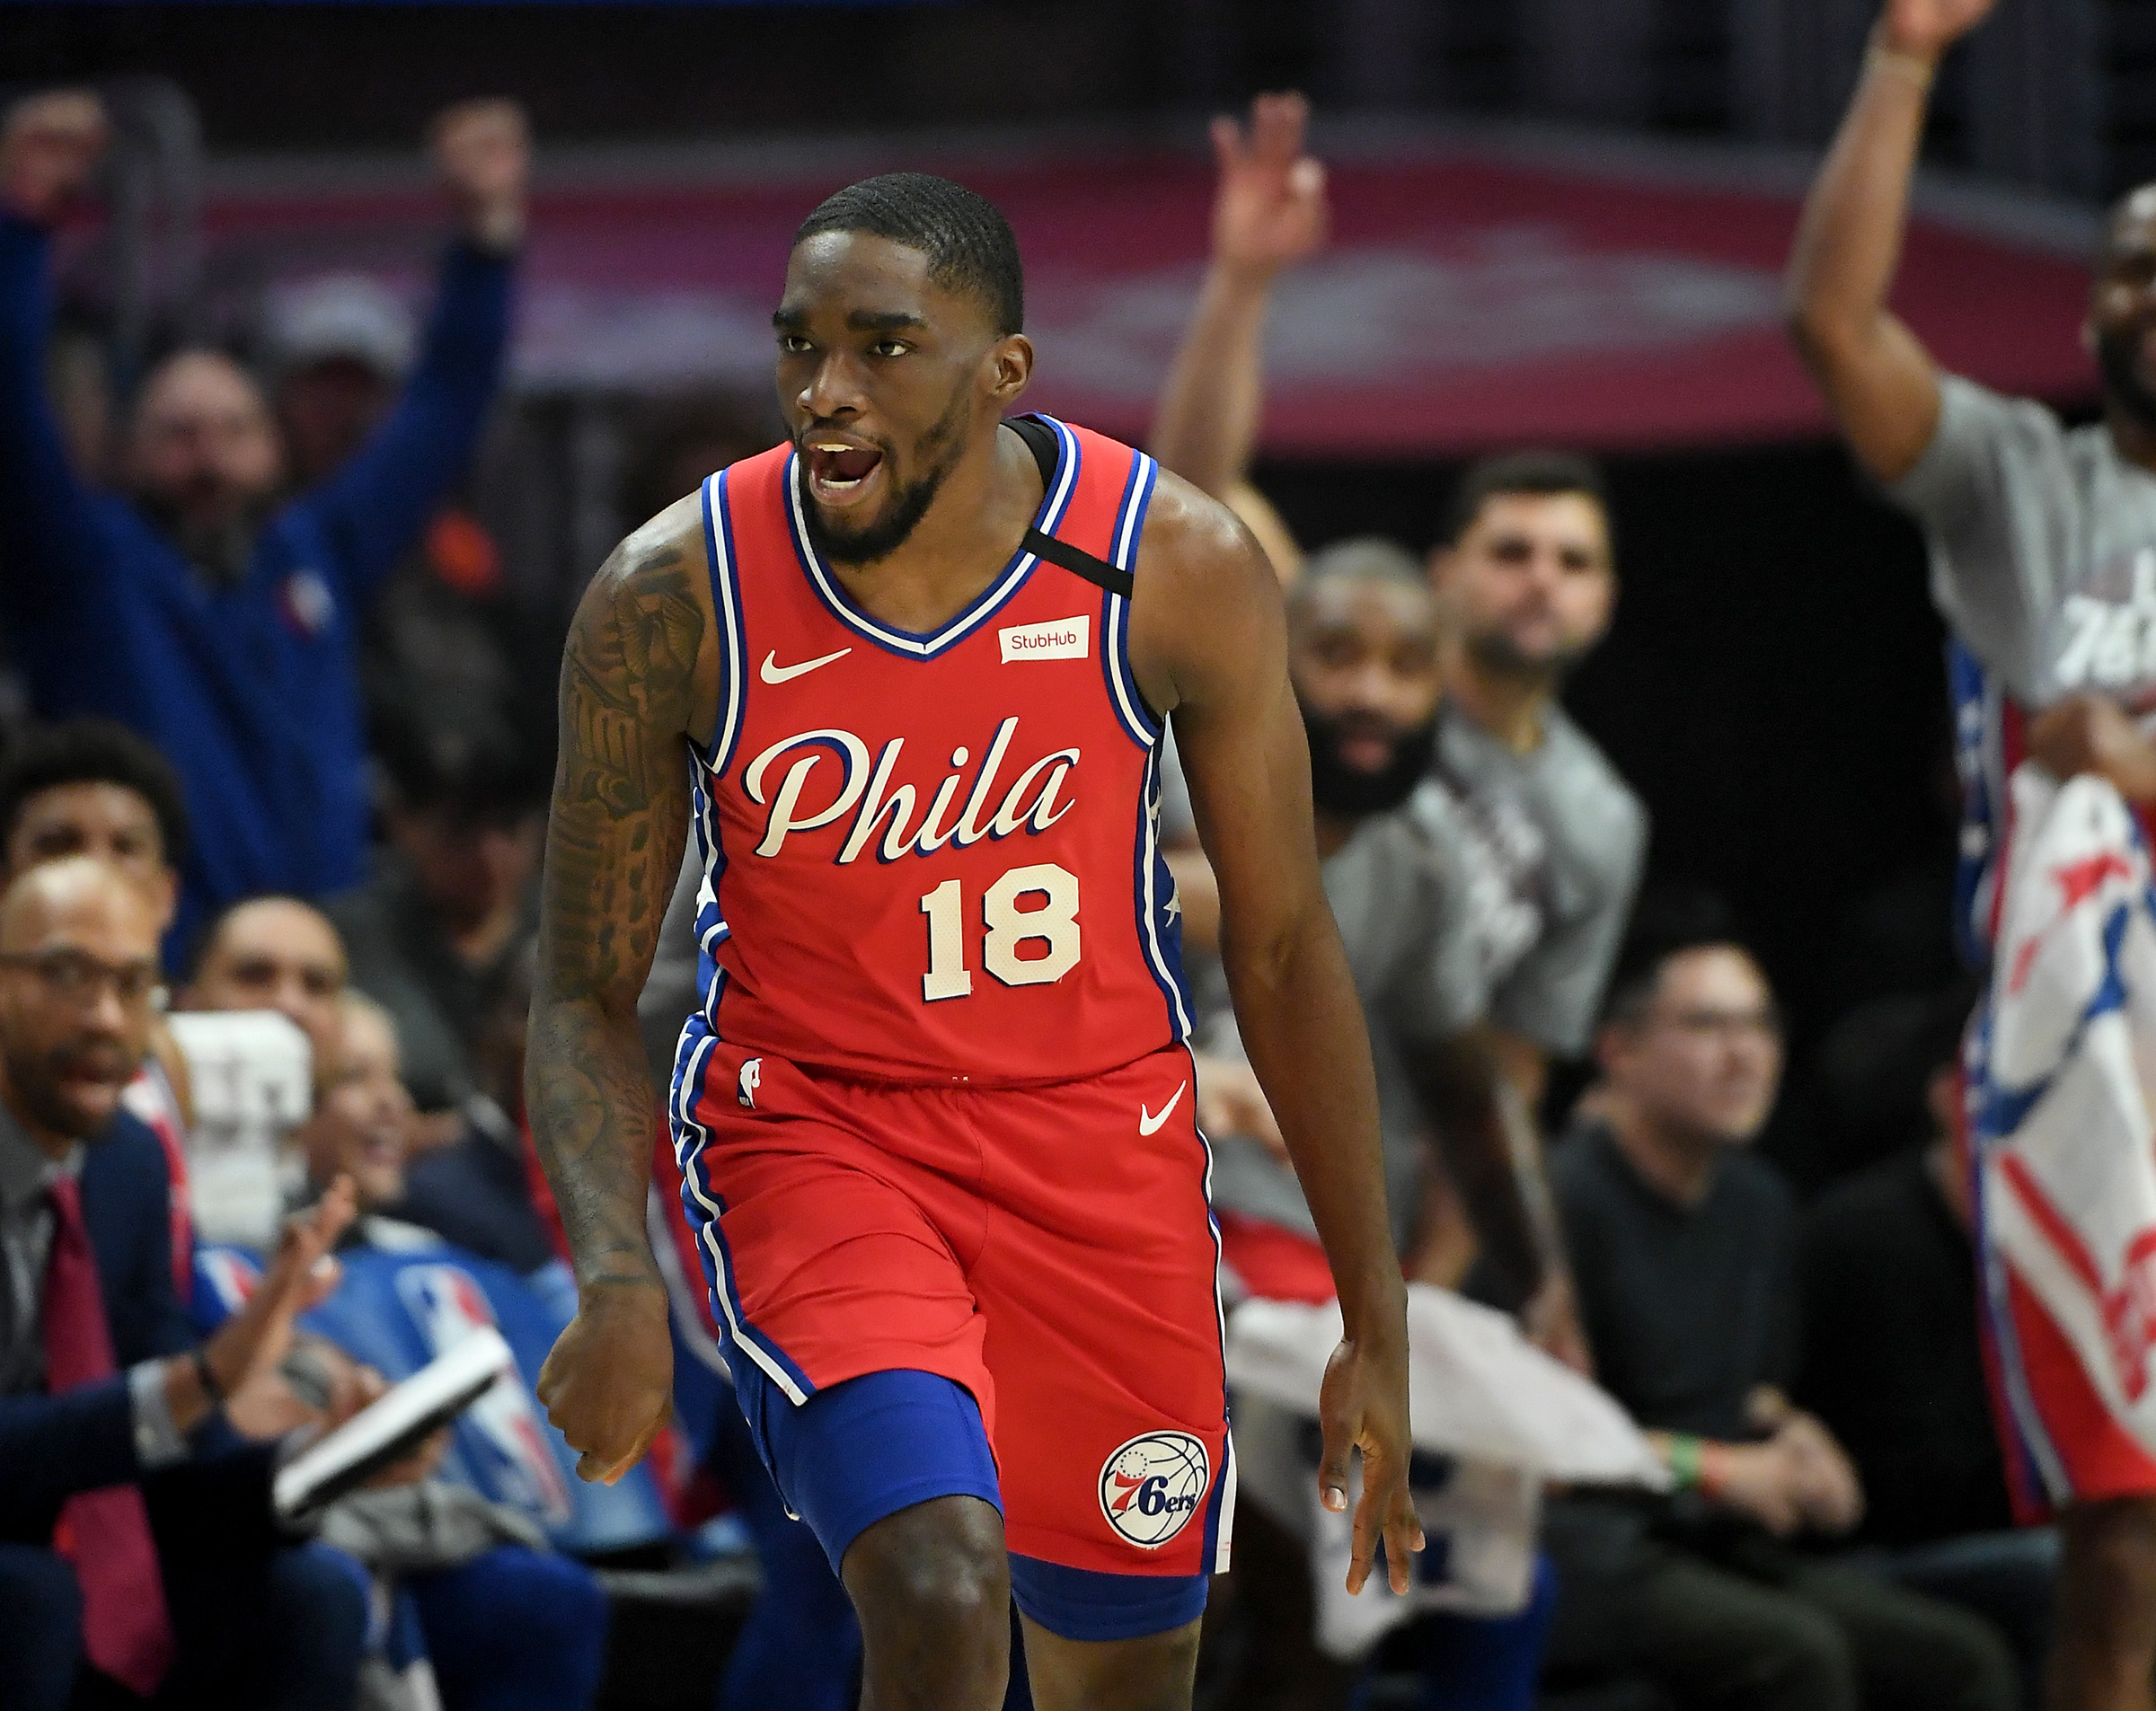 Philadelphia 76ers guard Shake Milton heads down court after a three point basket in the first half of the game against the Los Angeles Clippers at Staples Center.